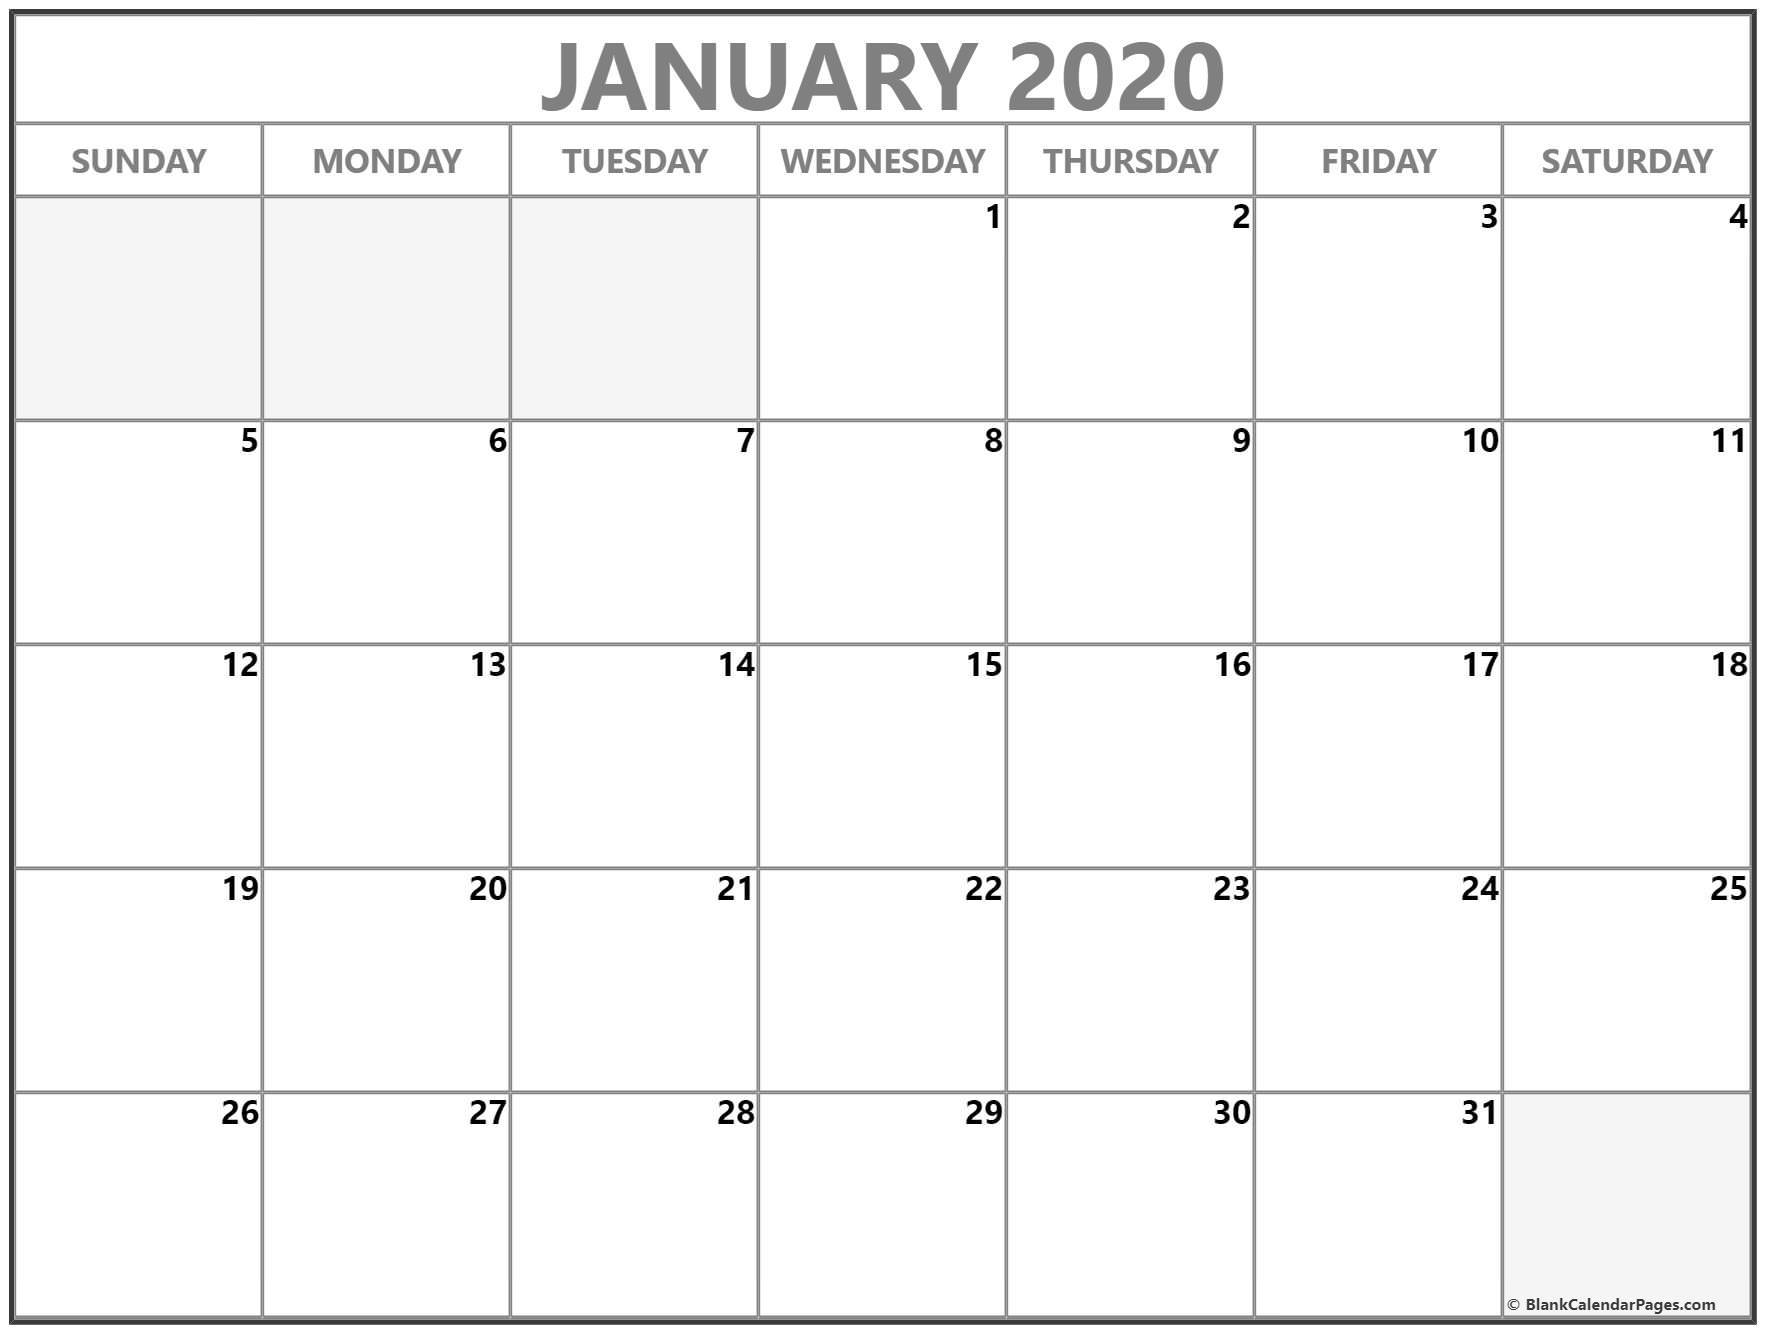 January 2020 Calendar | Free Printable Monthly Calendars Free Printable Calendars Without Weekends